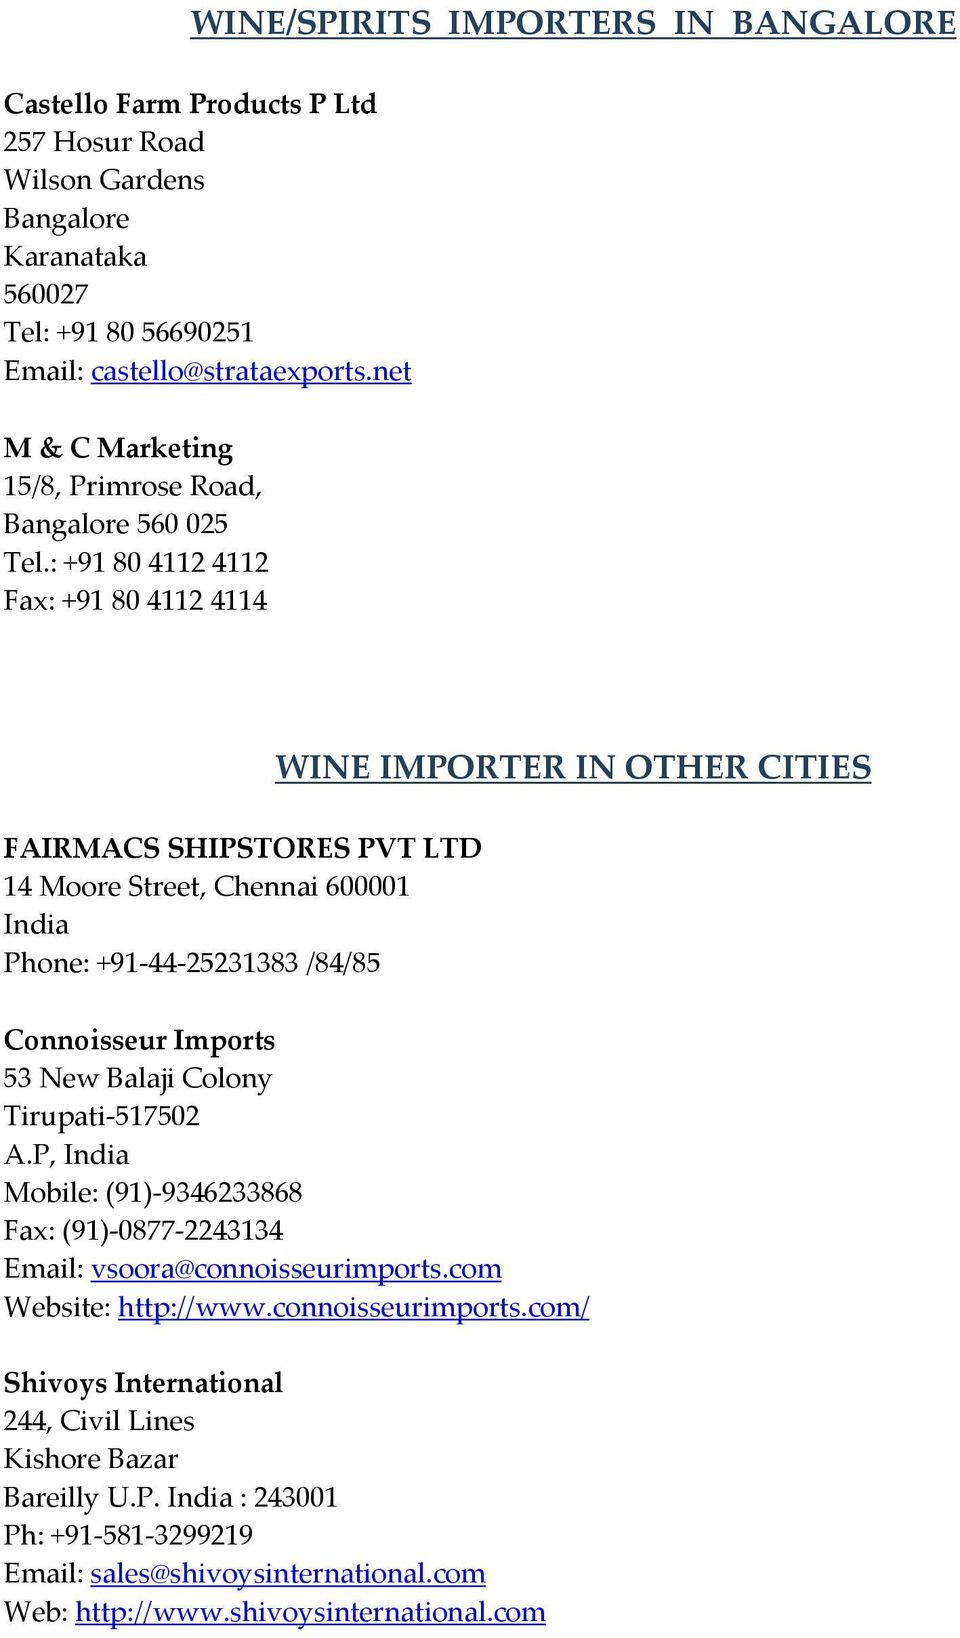 : +91 80 4112 4112 Fax: +91 80 4112 4114 FAIRMACS SHIPSTORES PVT LTD 14 Moore Street, Chennai 600001 India Phone: +91 44 25231383 /84/85 WINE IMPORTER IN OTHER CITIES Connoisseur Imports 53 New